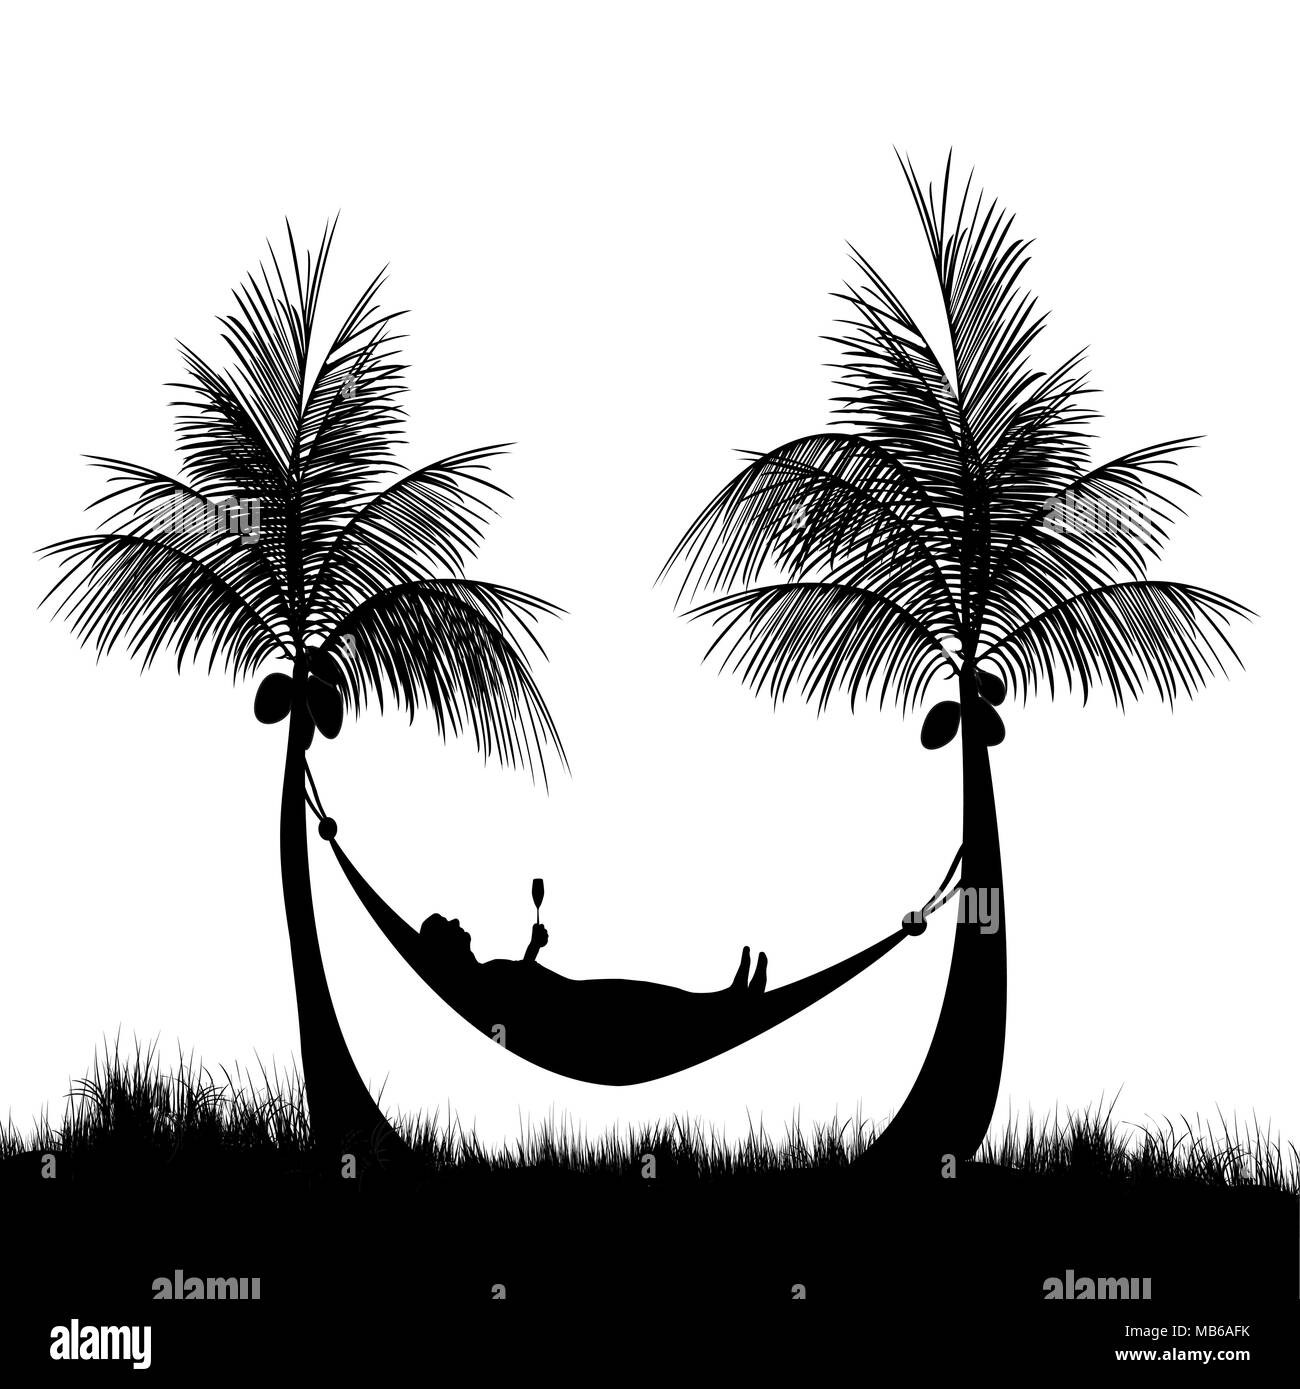 relaxing in a hammock at the beach after a hard days work - Stock Image